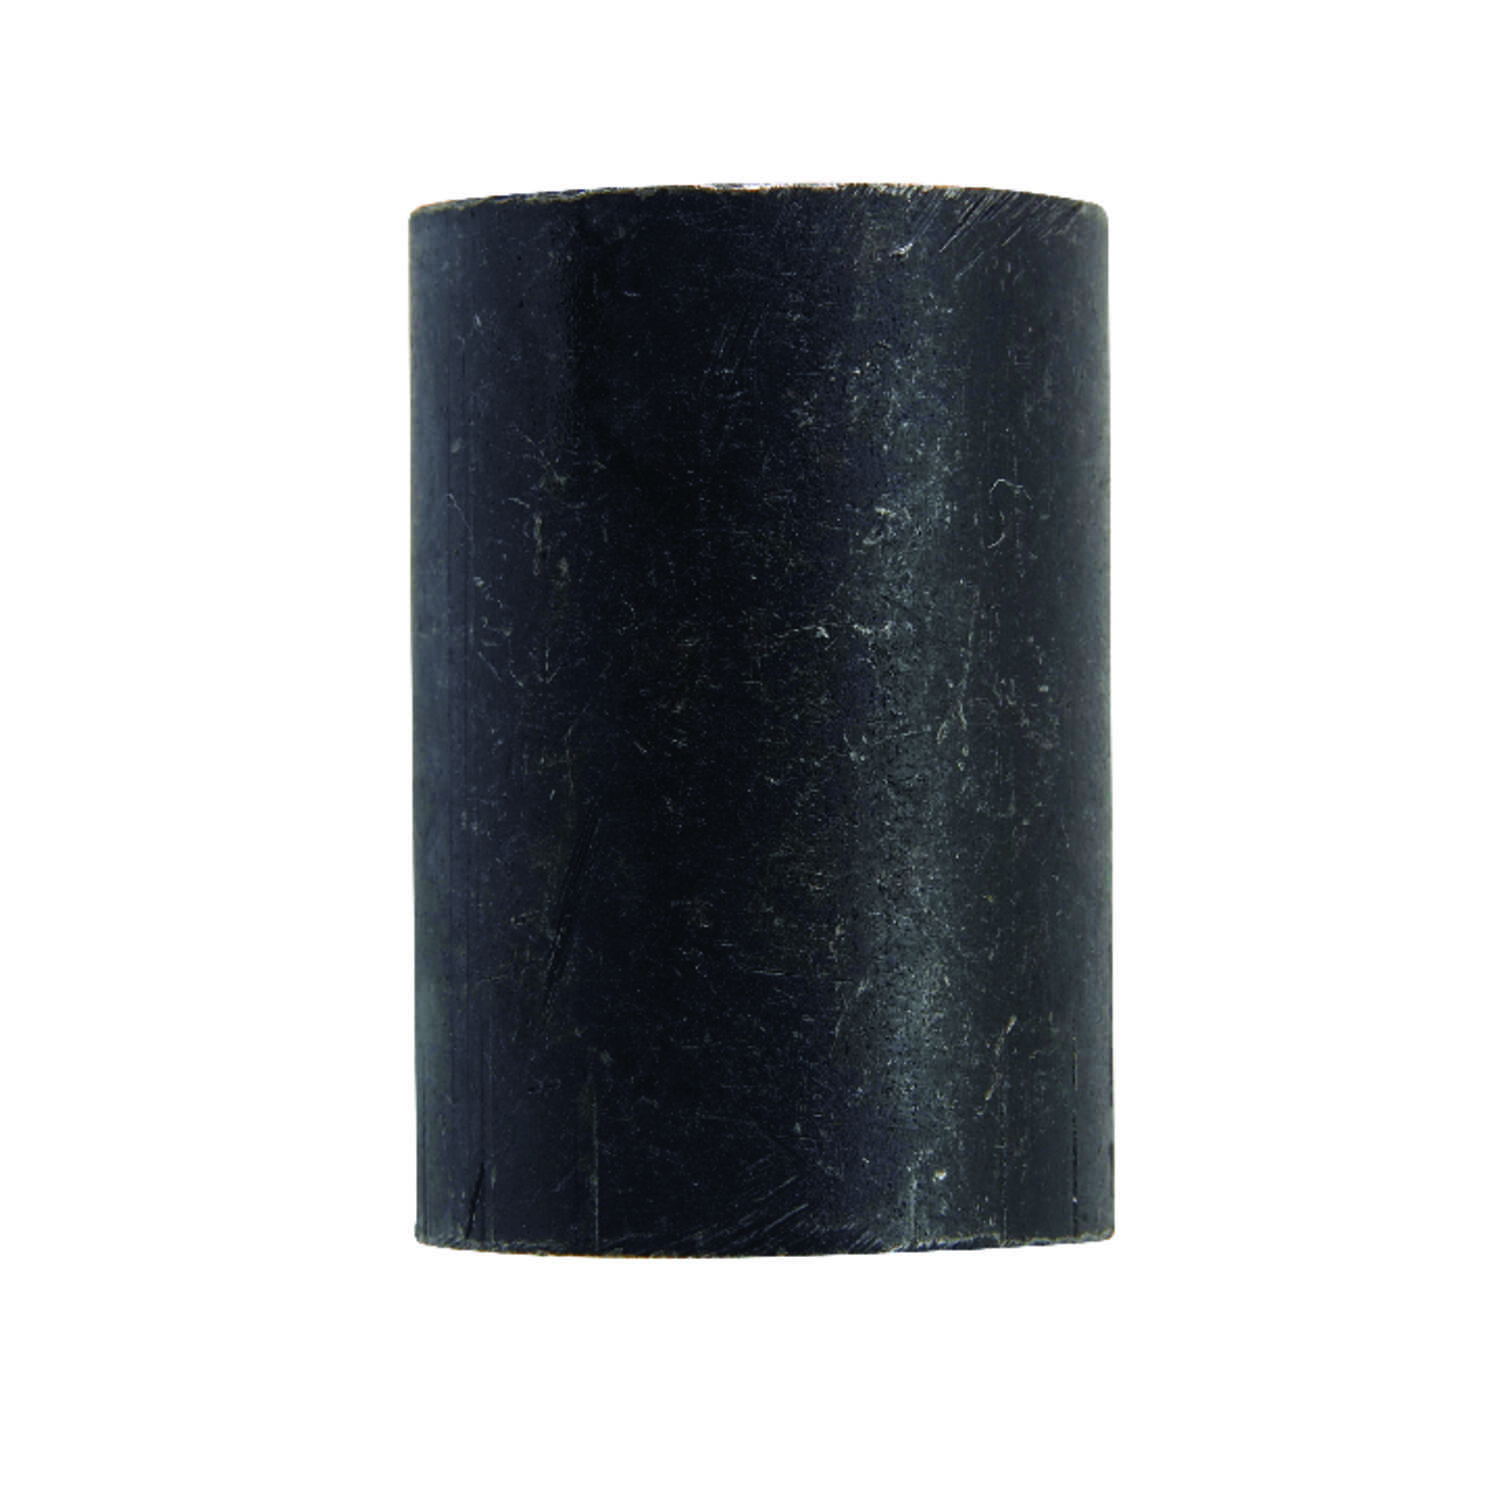 BK Products  1-1/2 in. FPT   x 1-1/2 in. Dia. FPT  Black  Malleable Iron  Coupling